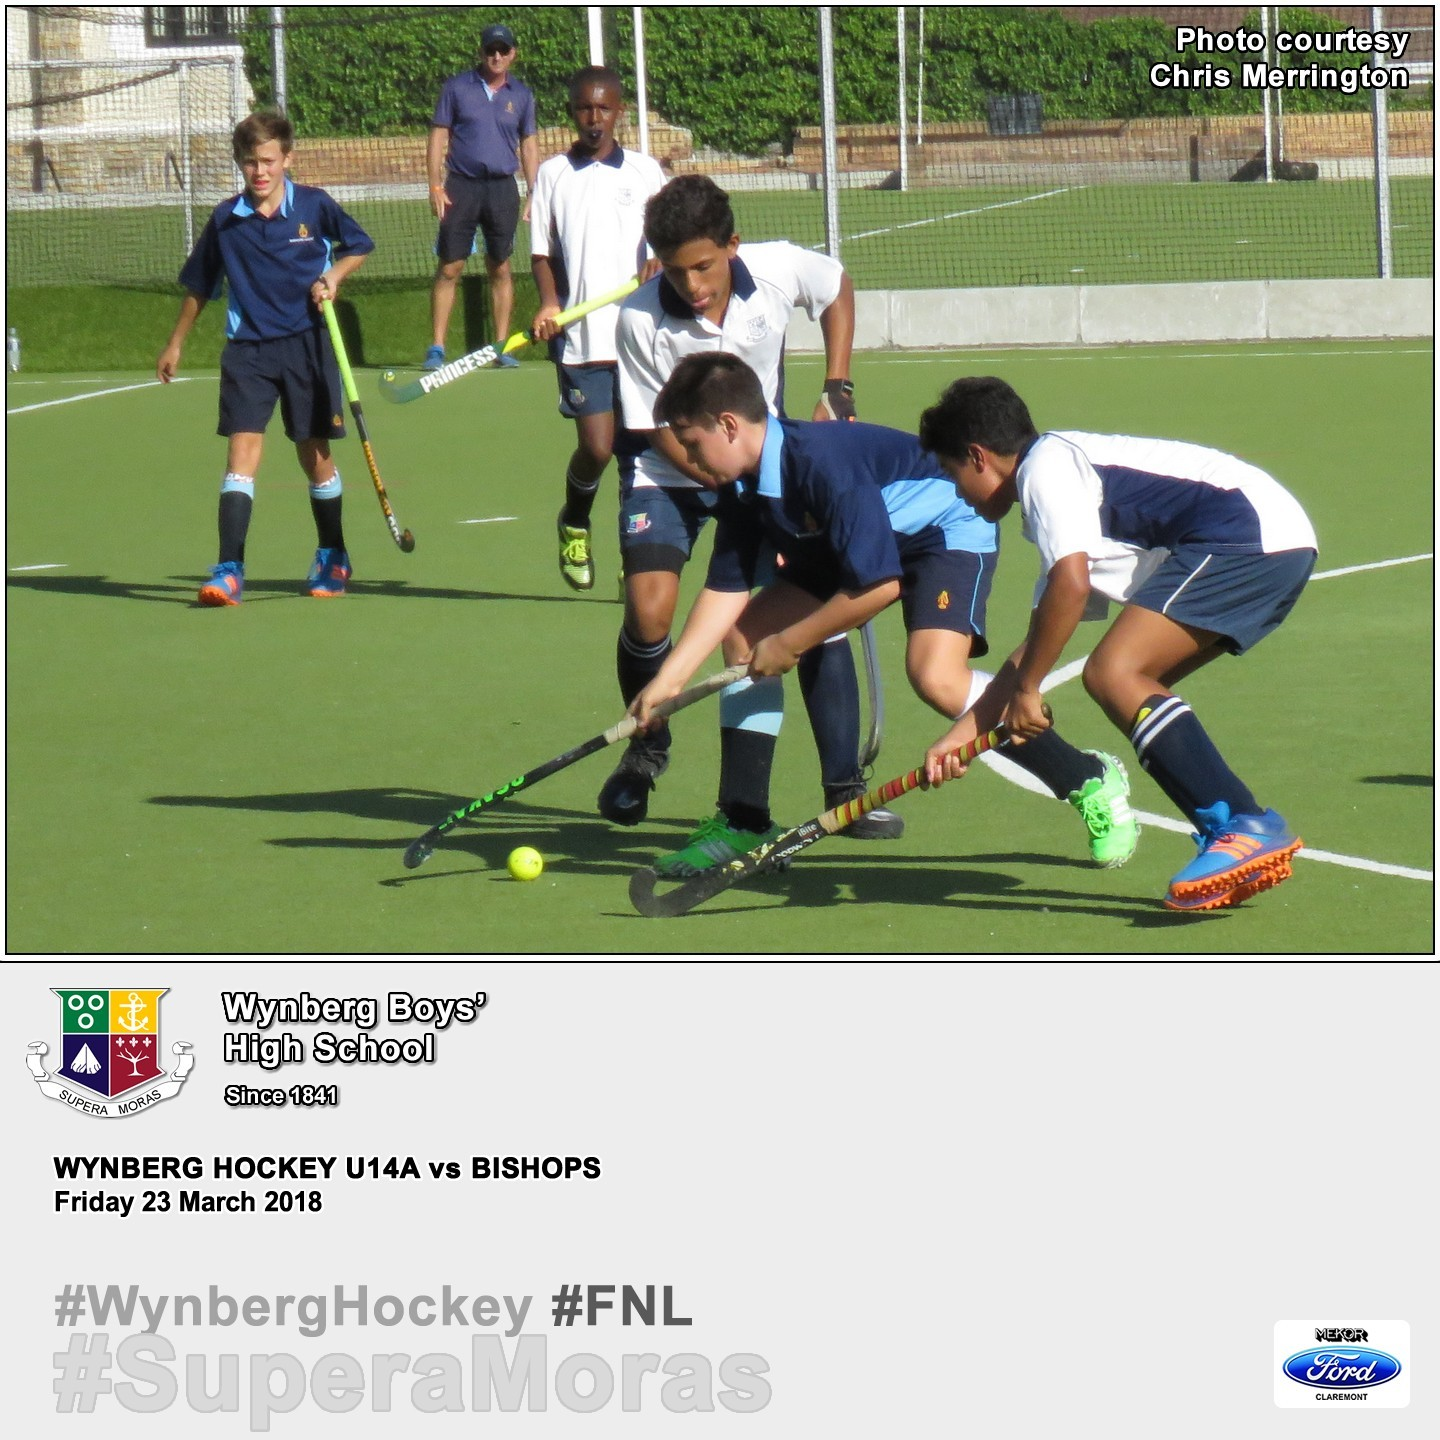 U14A vs Bishops, Friday 23 March 2018